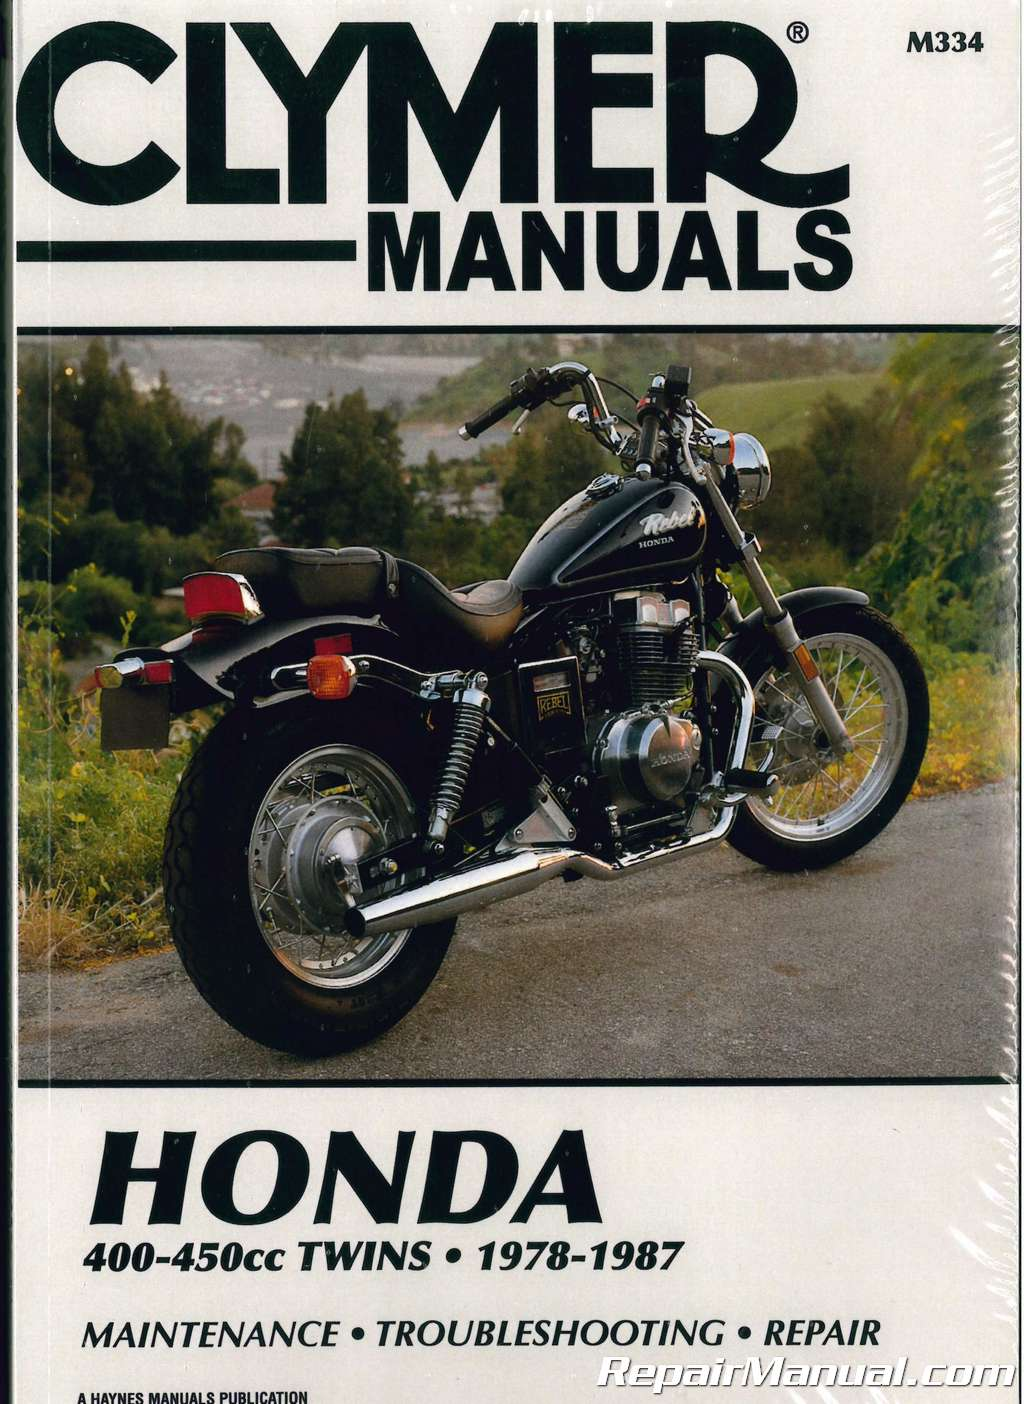 hight resolution of 1978 1987 honda cb400 cm400 cb450 cm450 cbx450 motorcycle clymer repair manual